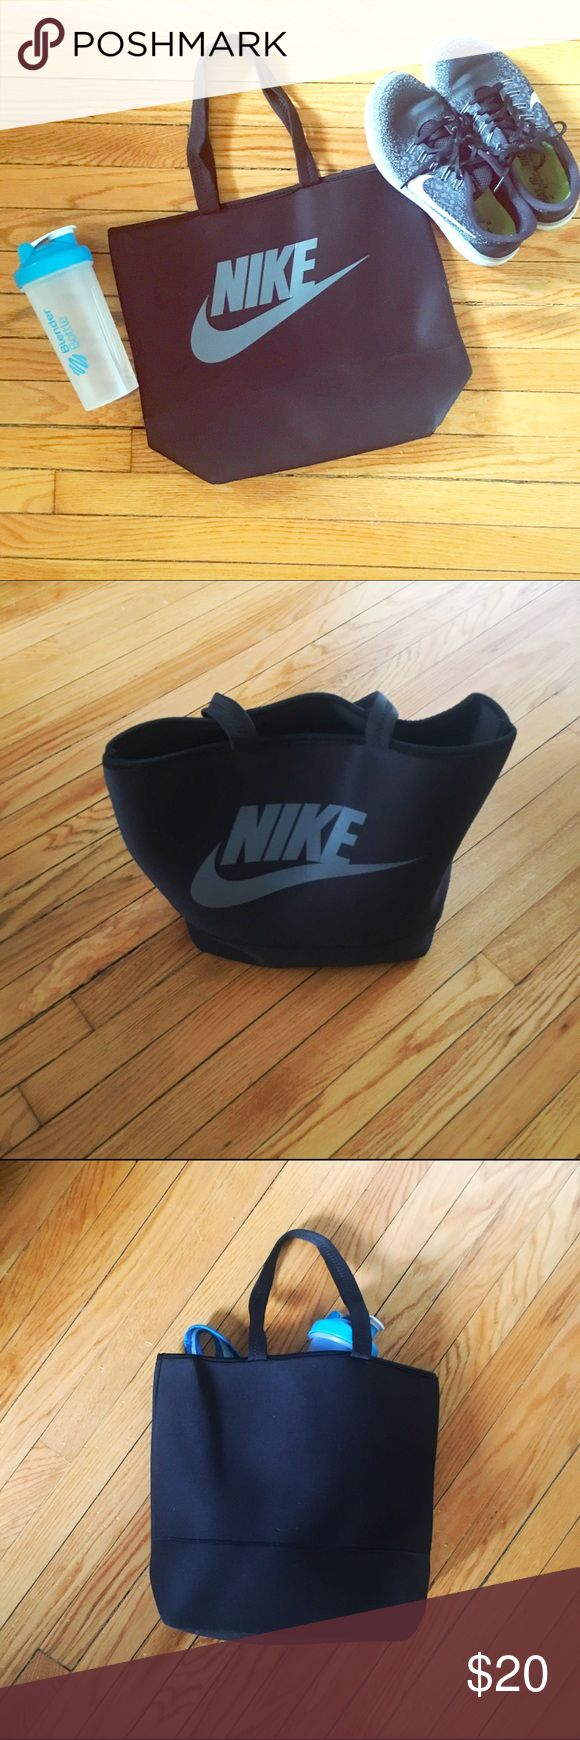 Nike tote/gym bag Nike polyurethane tote bag, perfect for trips to the gym or grocery store. In good used condition with no signs of wear. Measures 14' x 12' x 6'. Bundle for 25% off! Nike Bags Totes